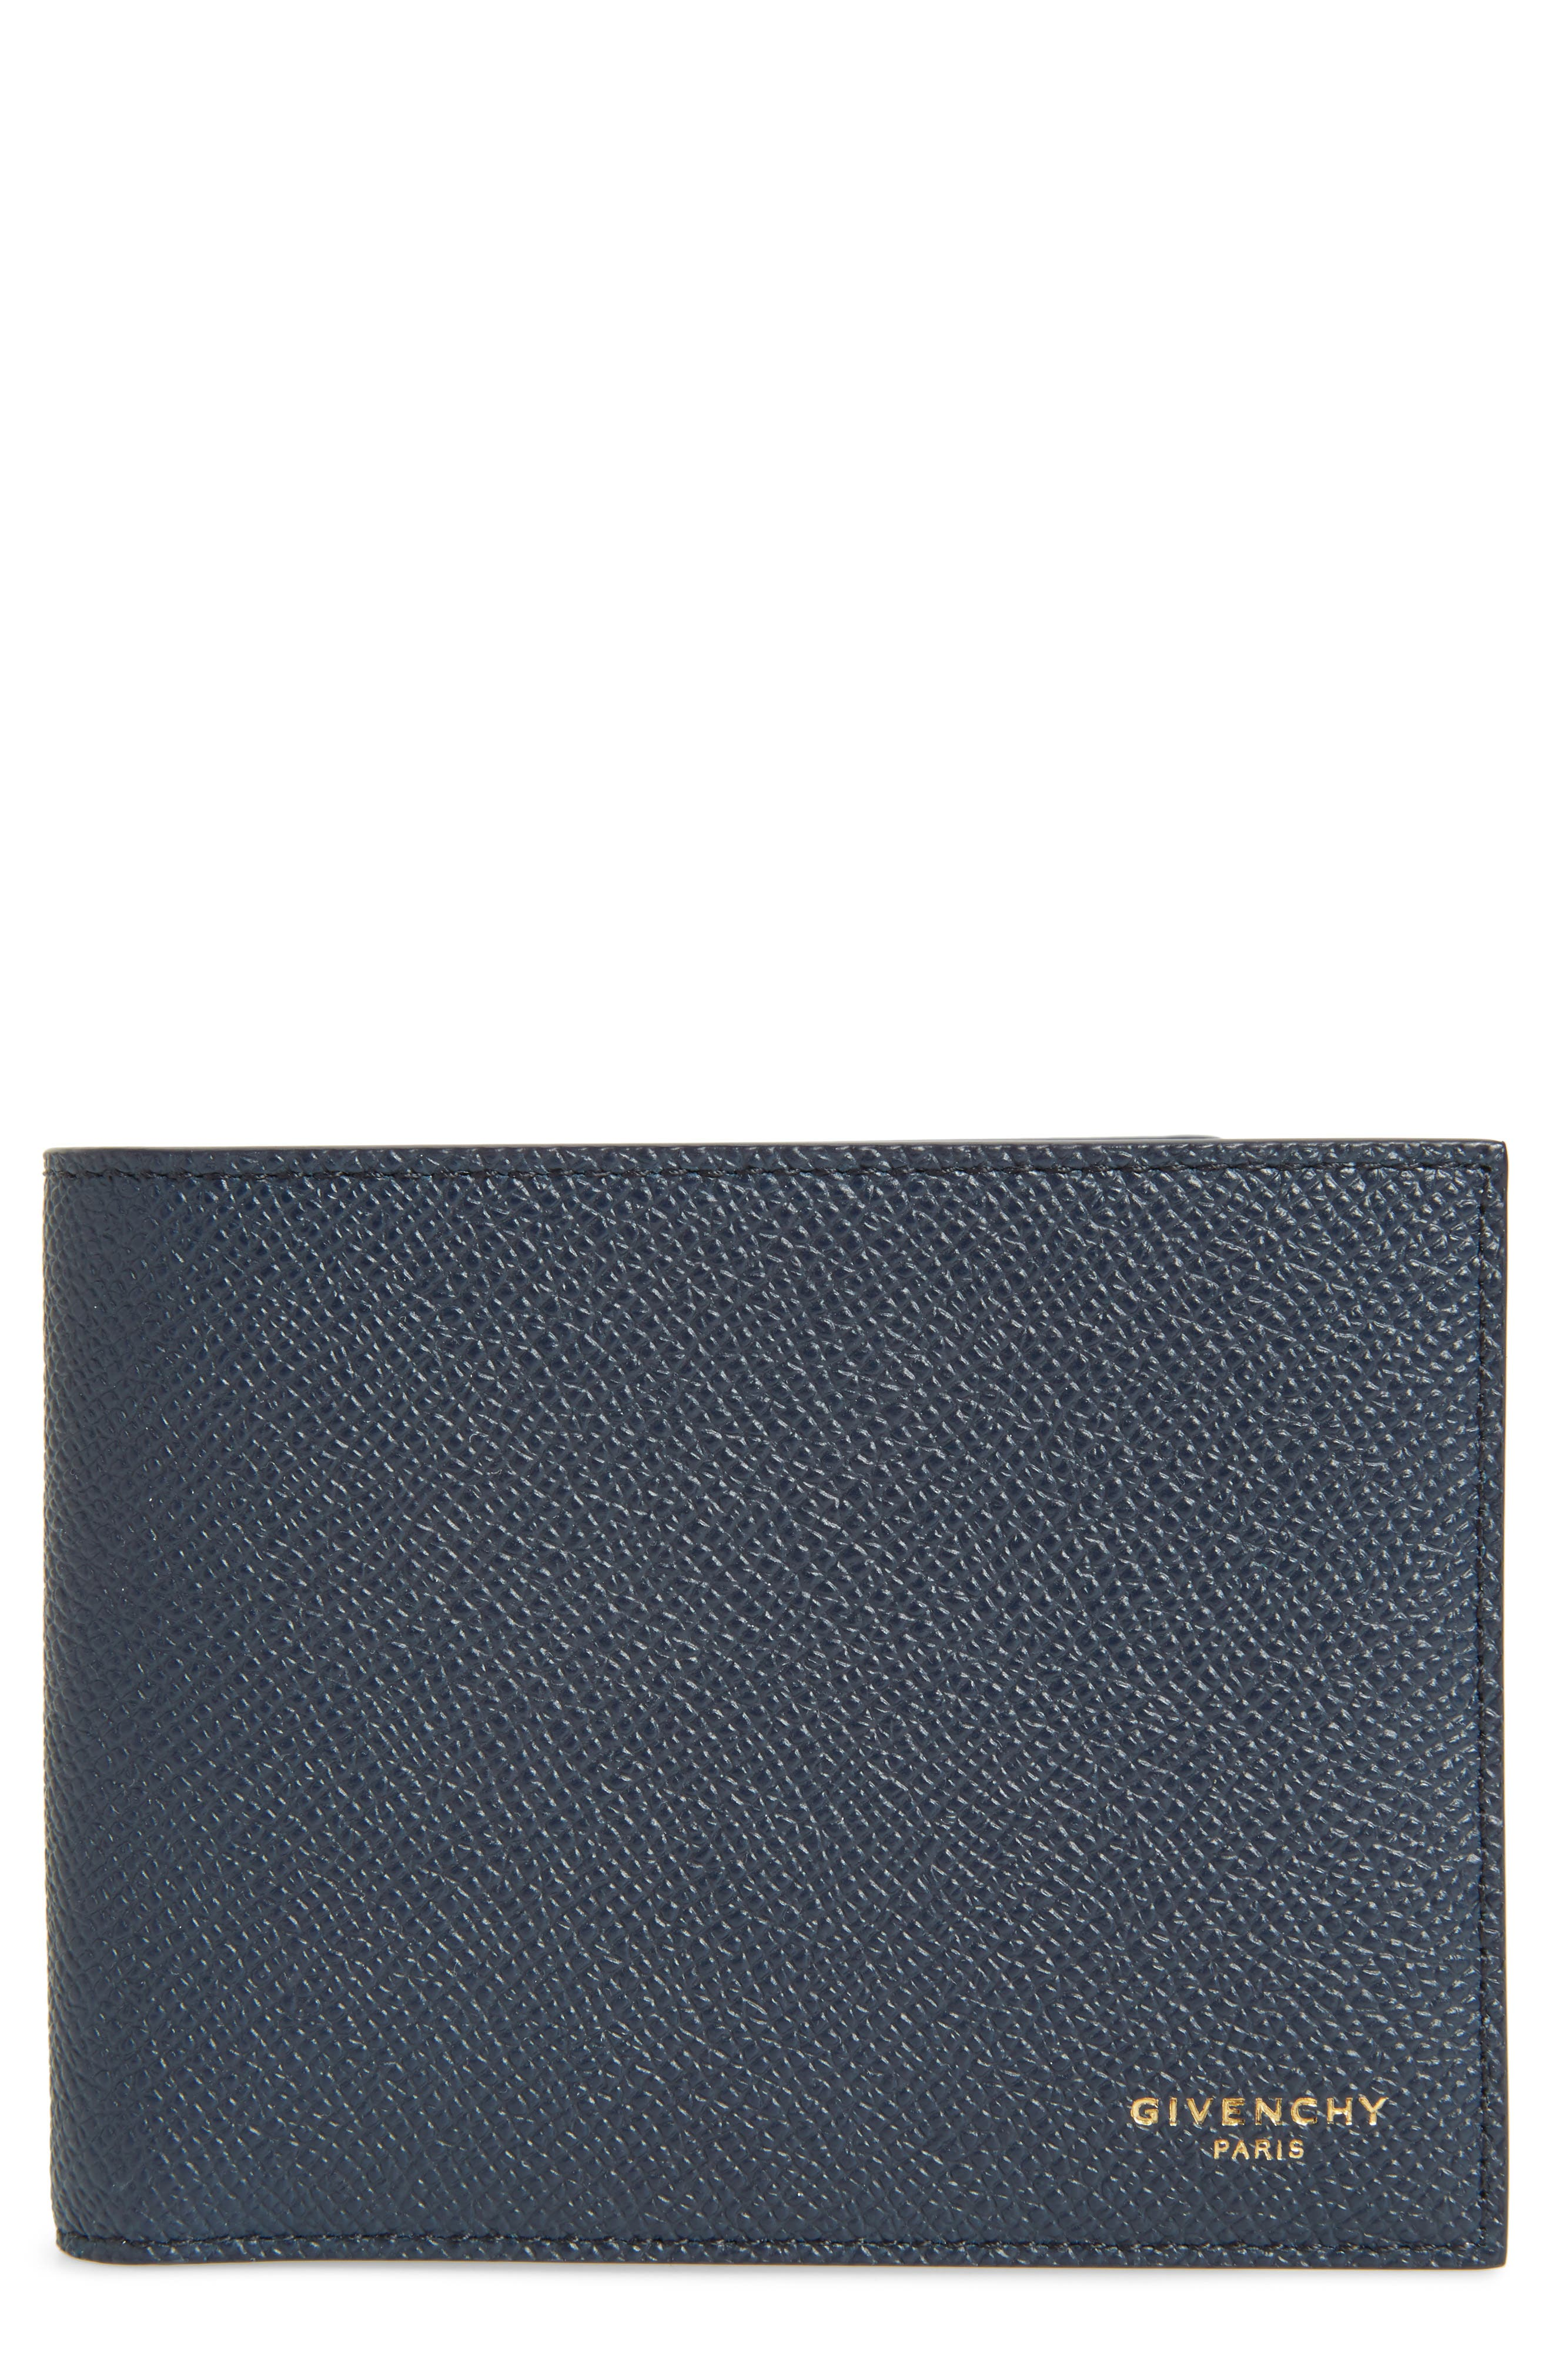 Alternate Image 1 Selected - Givenchy Eros Textured Leather Wallet